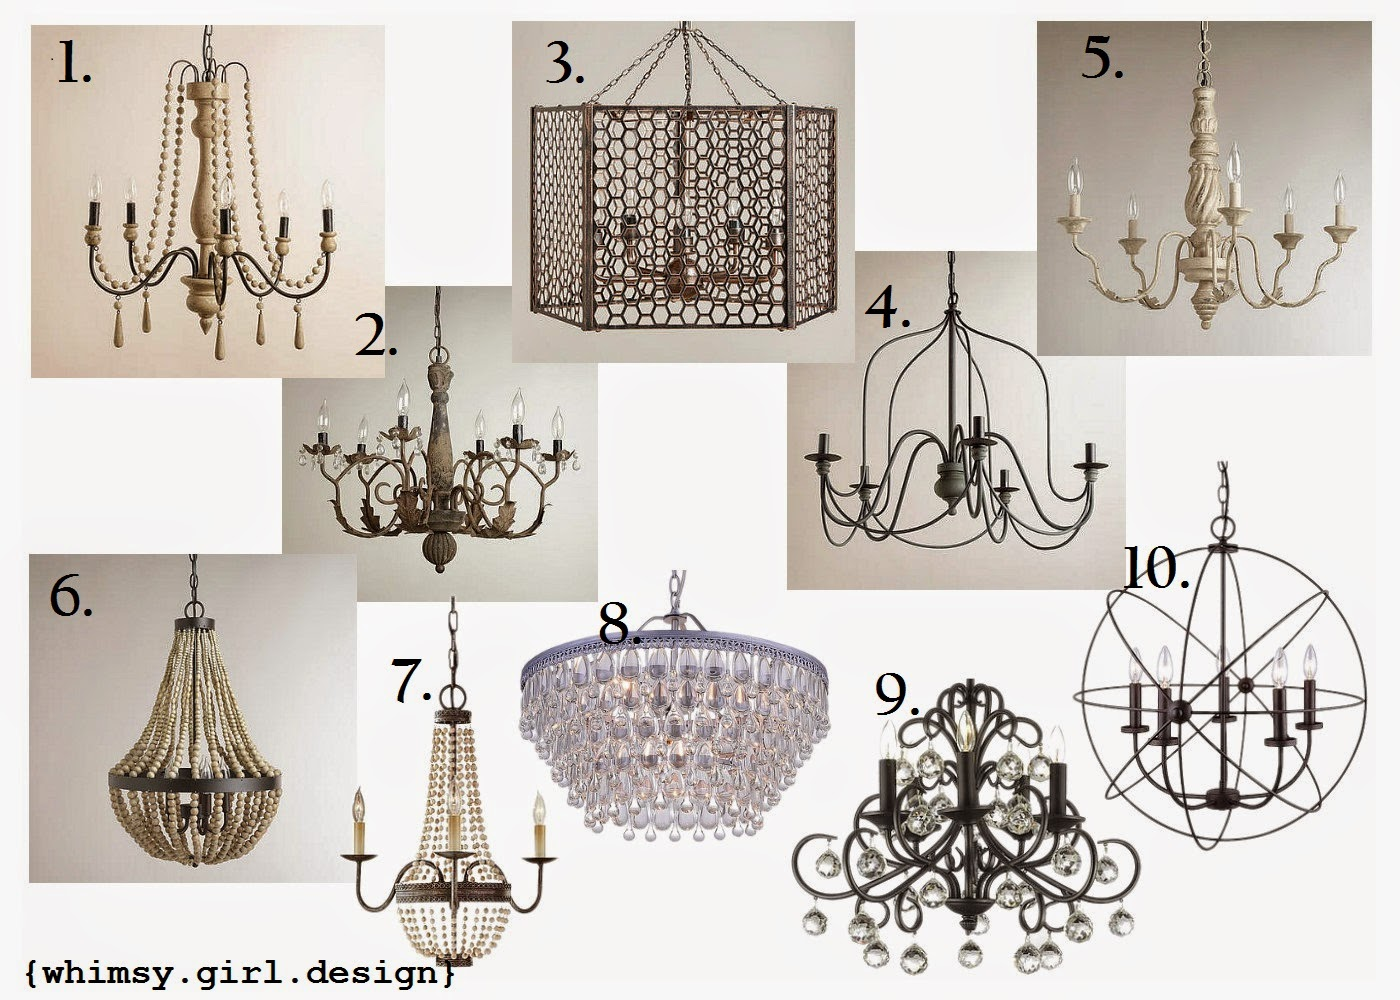 Whimsy girl friday finds chandeliers under 200 options for a few clients and came across these beauties that are all under 200 a new chandelier is a great way to give a room a new updated look aloadofball Choice Image